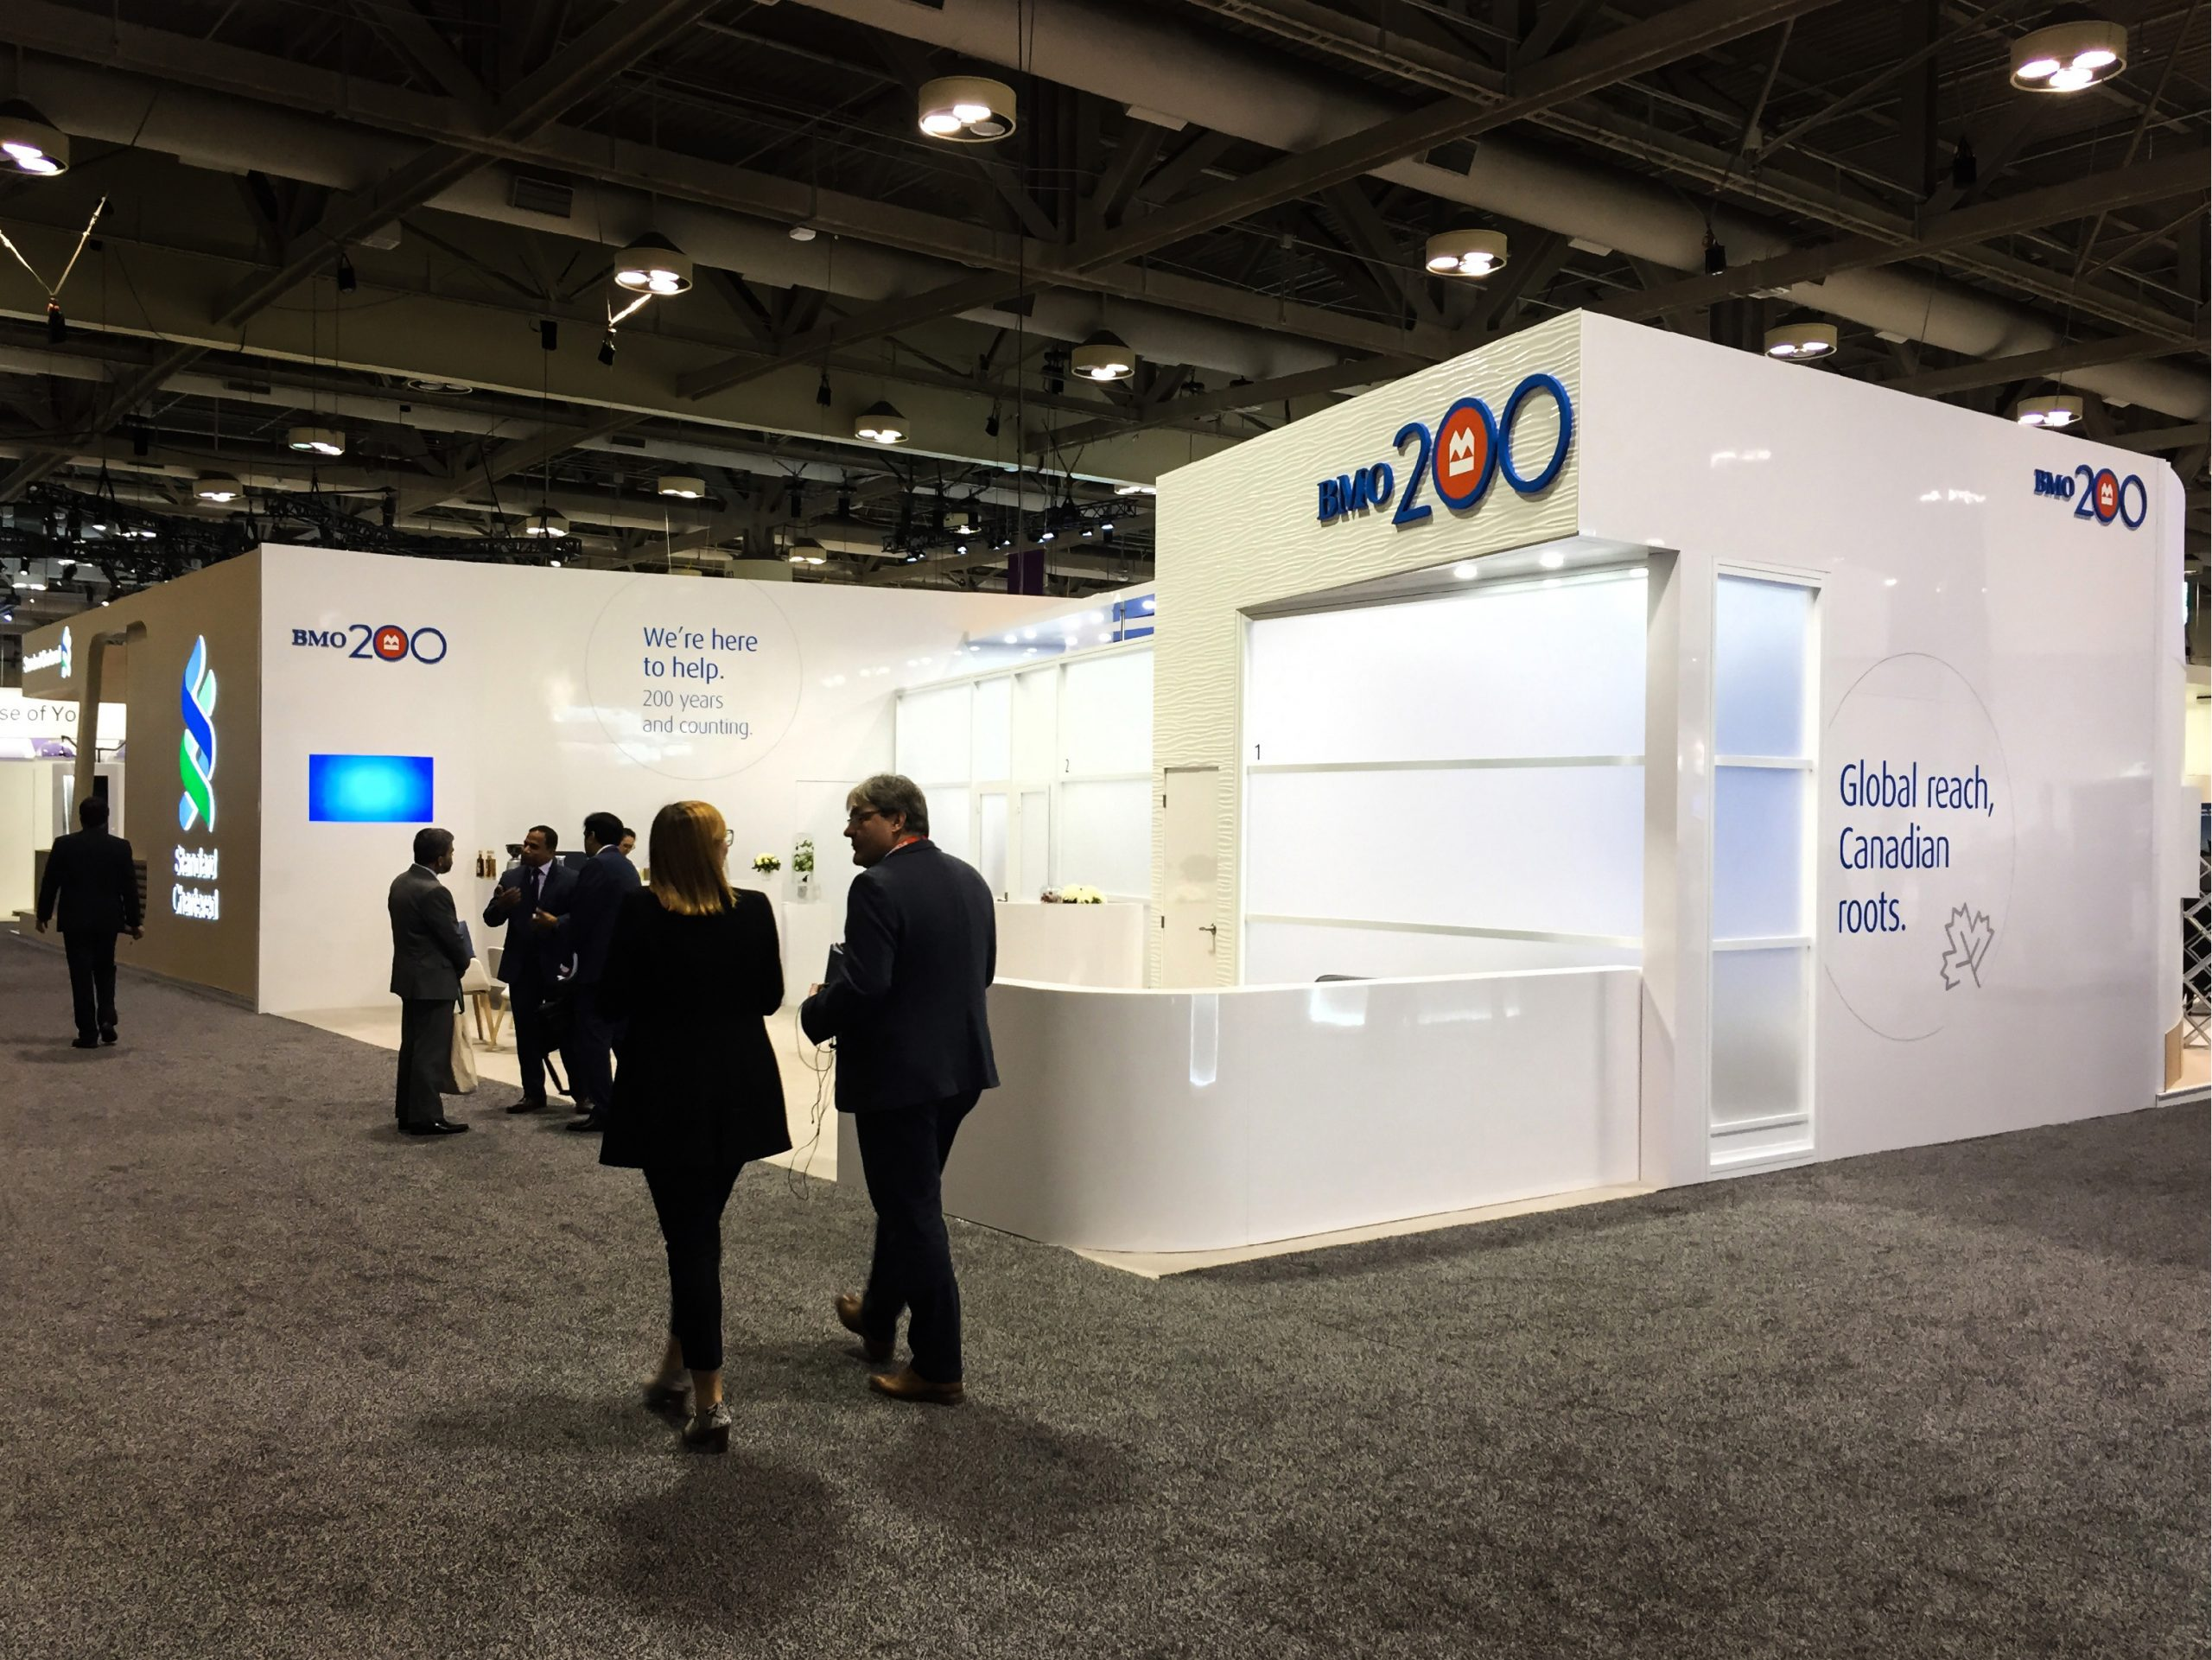 This is a view of the Bank of Montreal activation for SIBOS